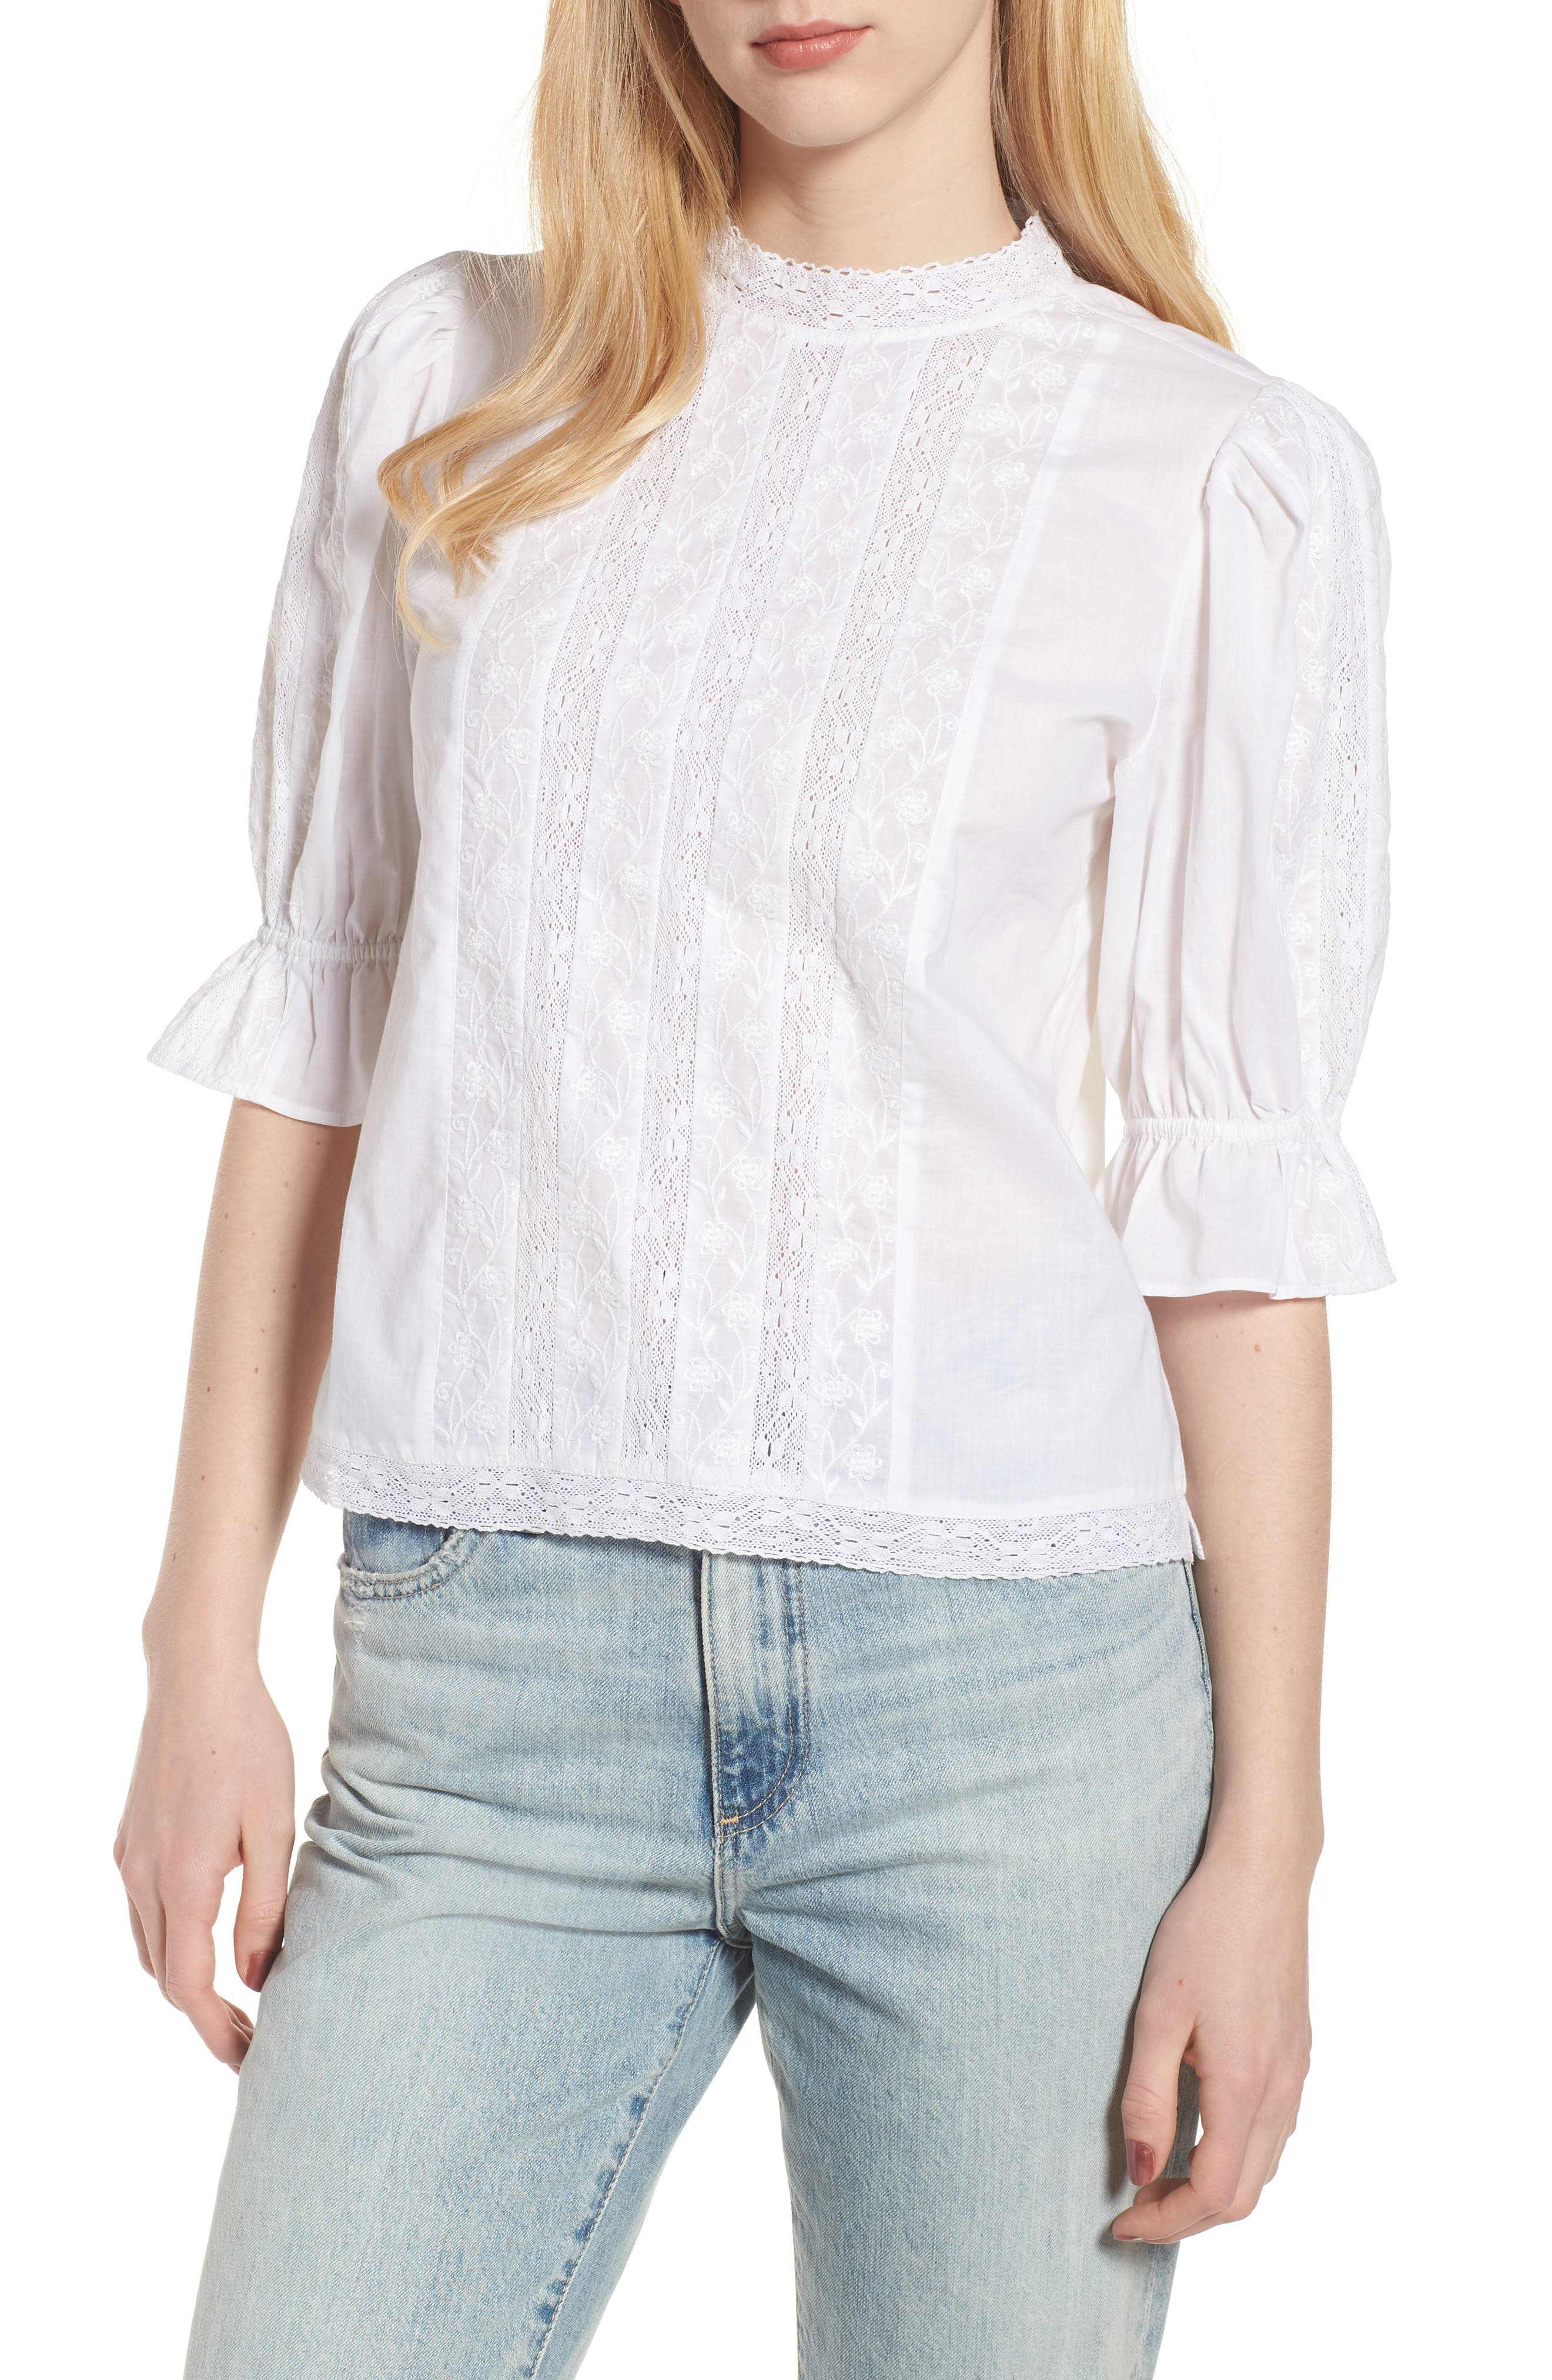 Hinge Embroidered Lace Top